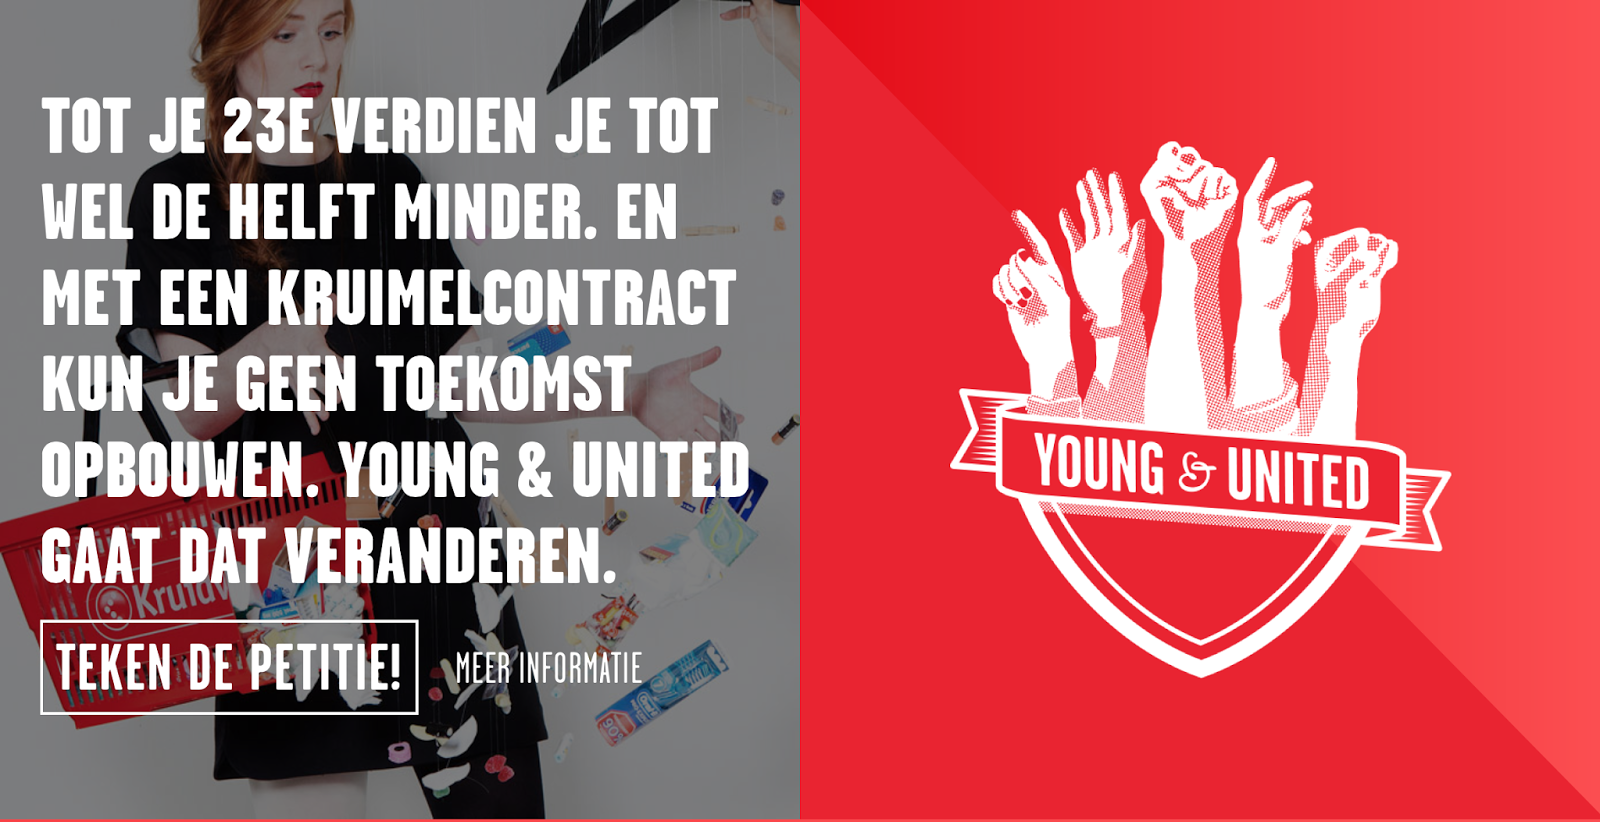 Youngandunited.nl